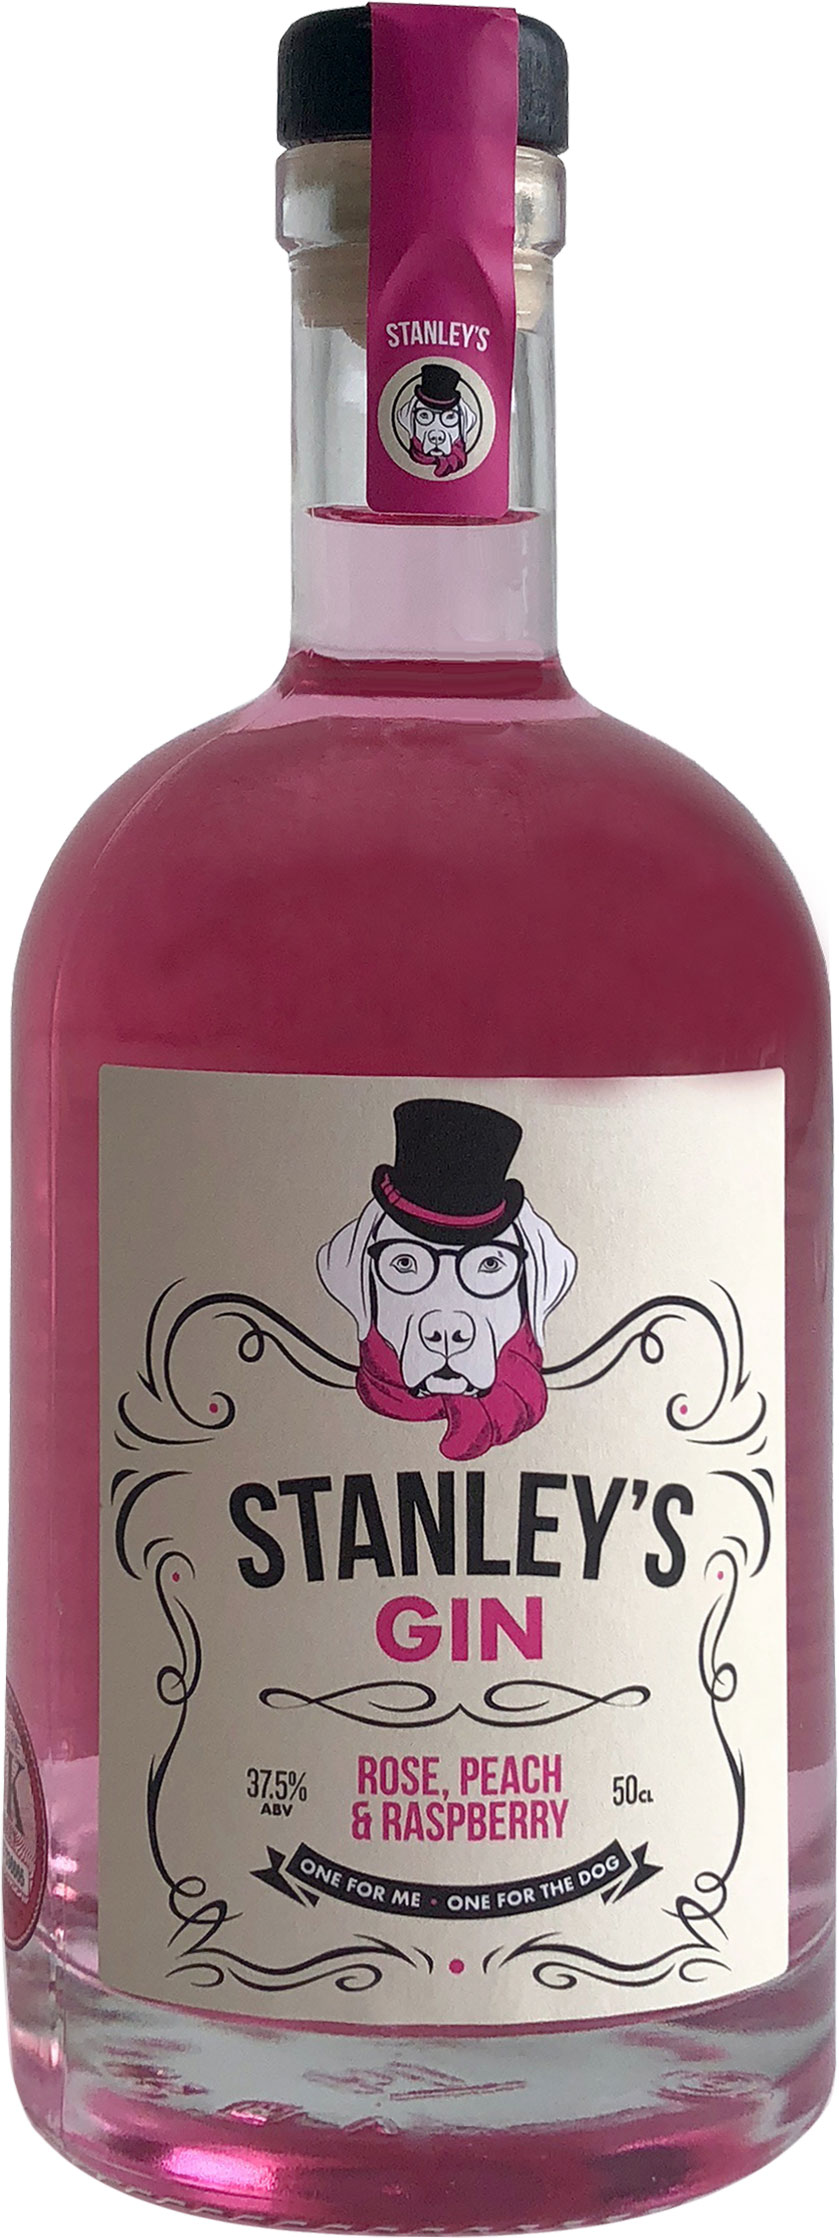 Stanleys Gin - Rose, Peach & Raspberry 50cl Bottle